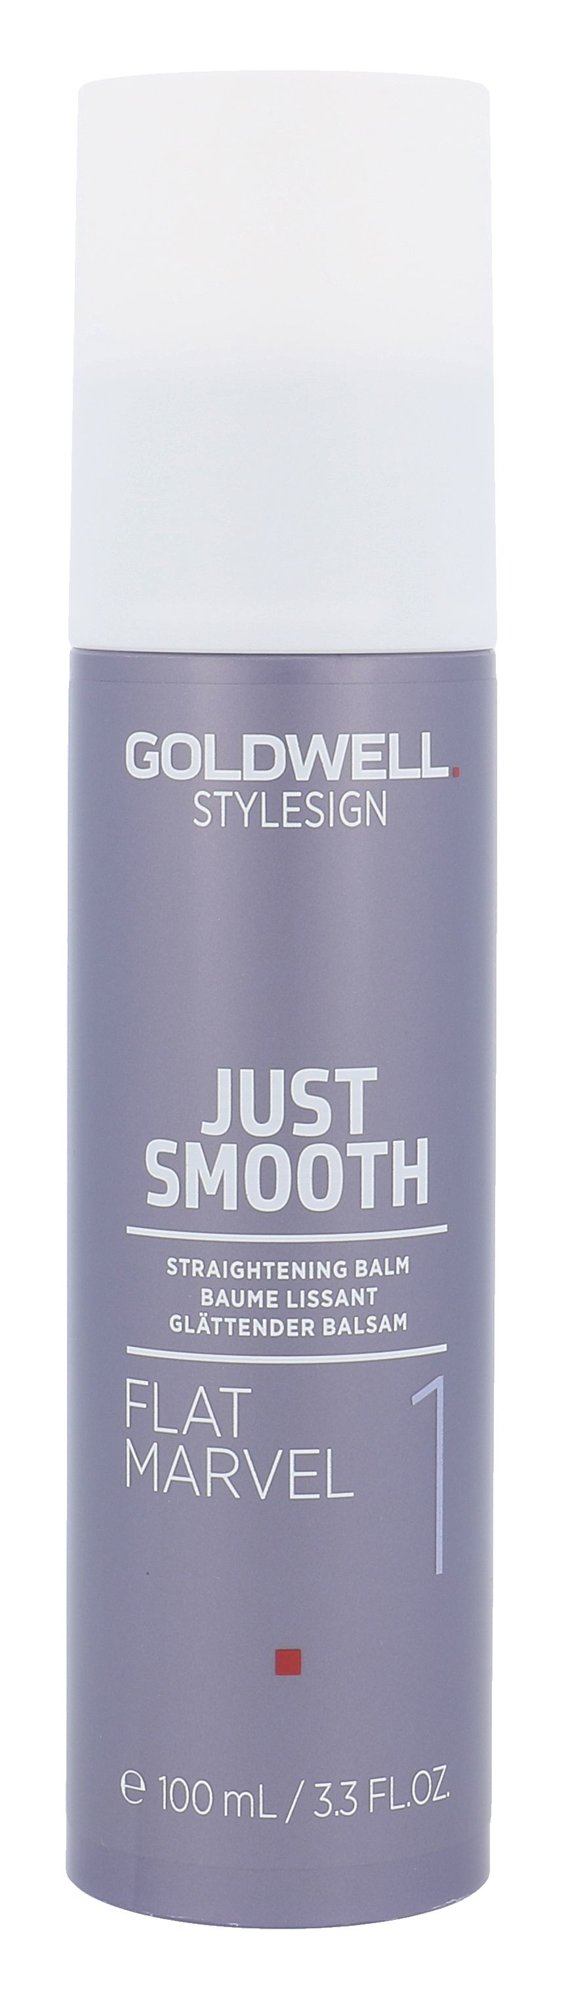 Goldwell Style Sign Cosmetic 100ml